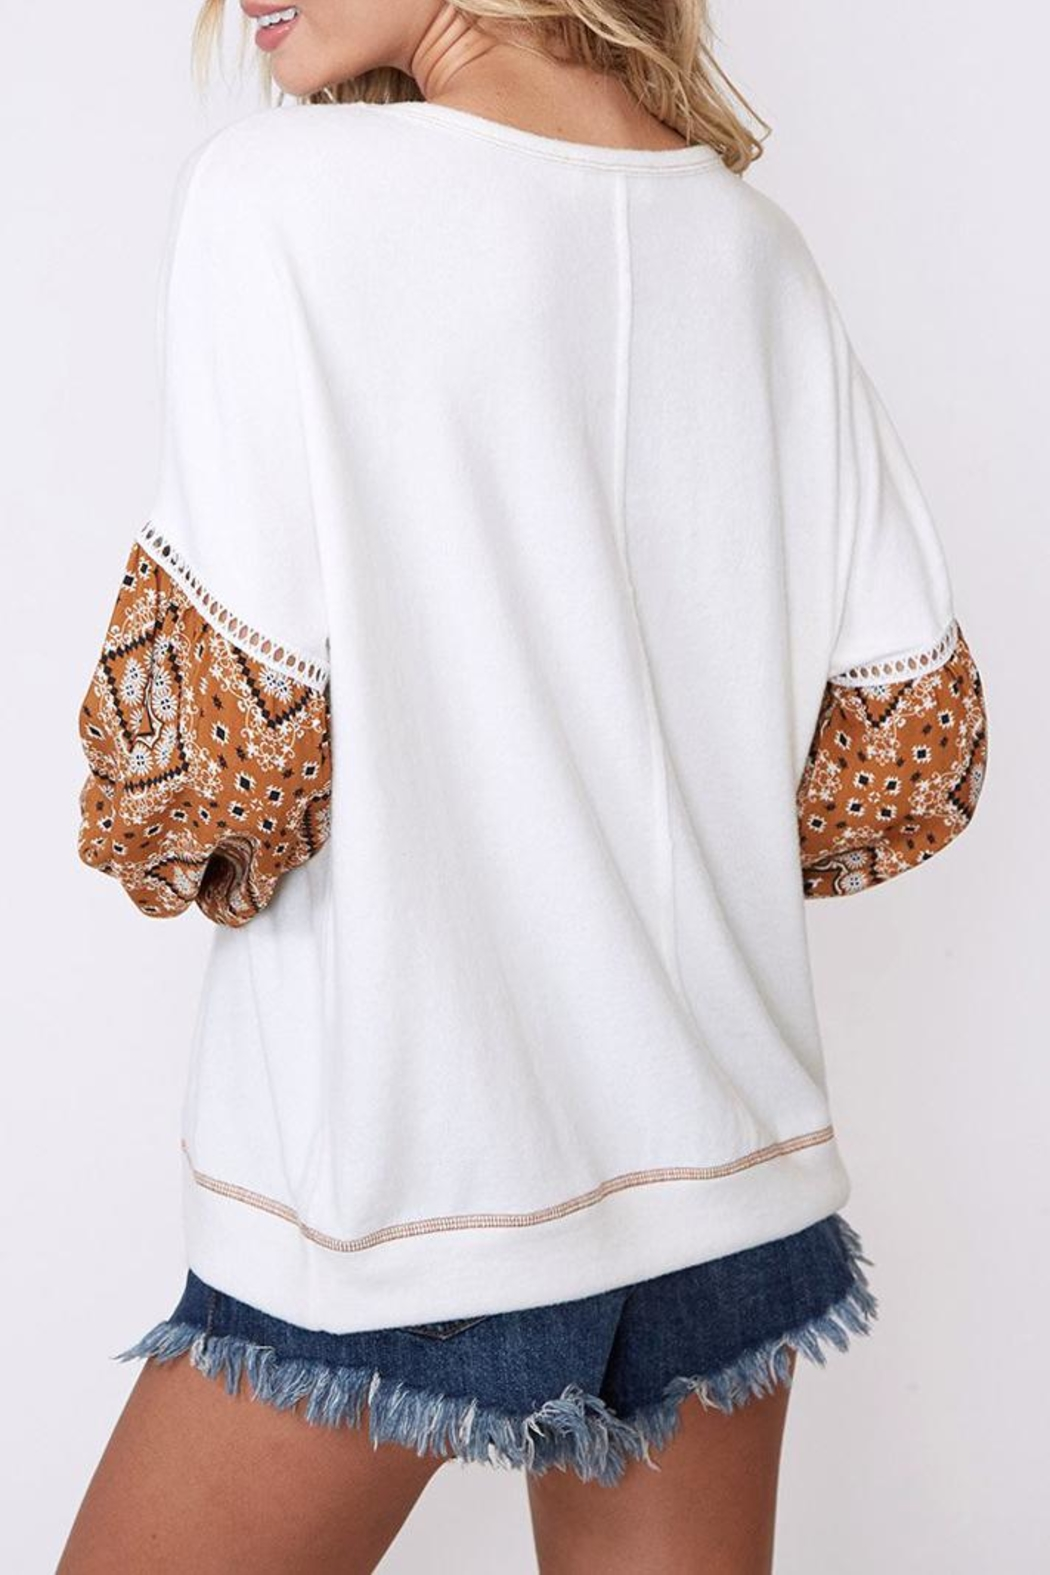 Peach Love California Contrast Sleeve Top - Back Cropped Image